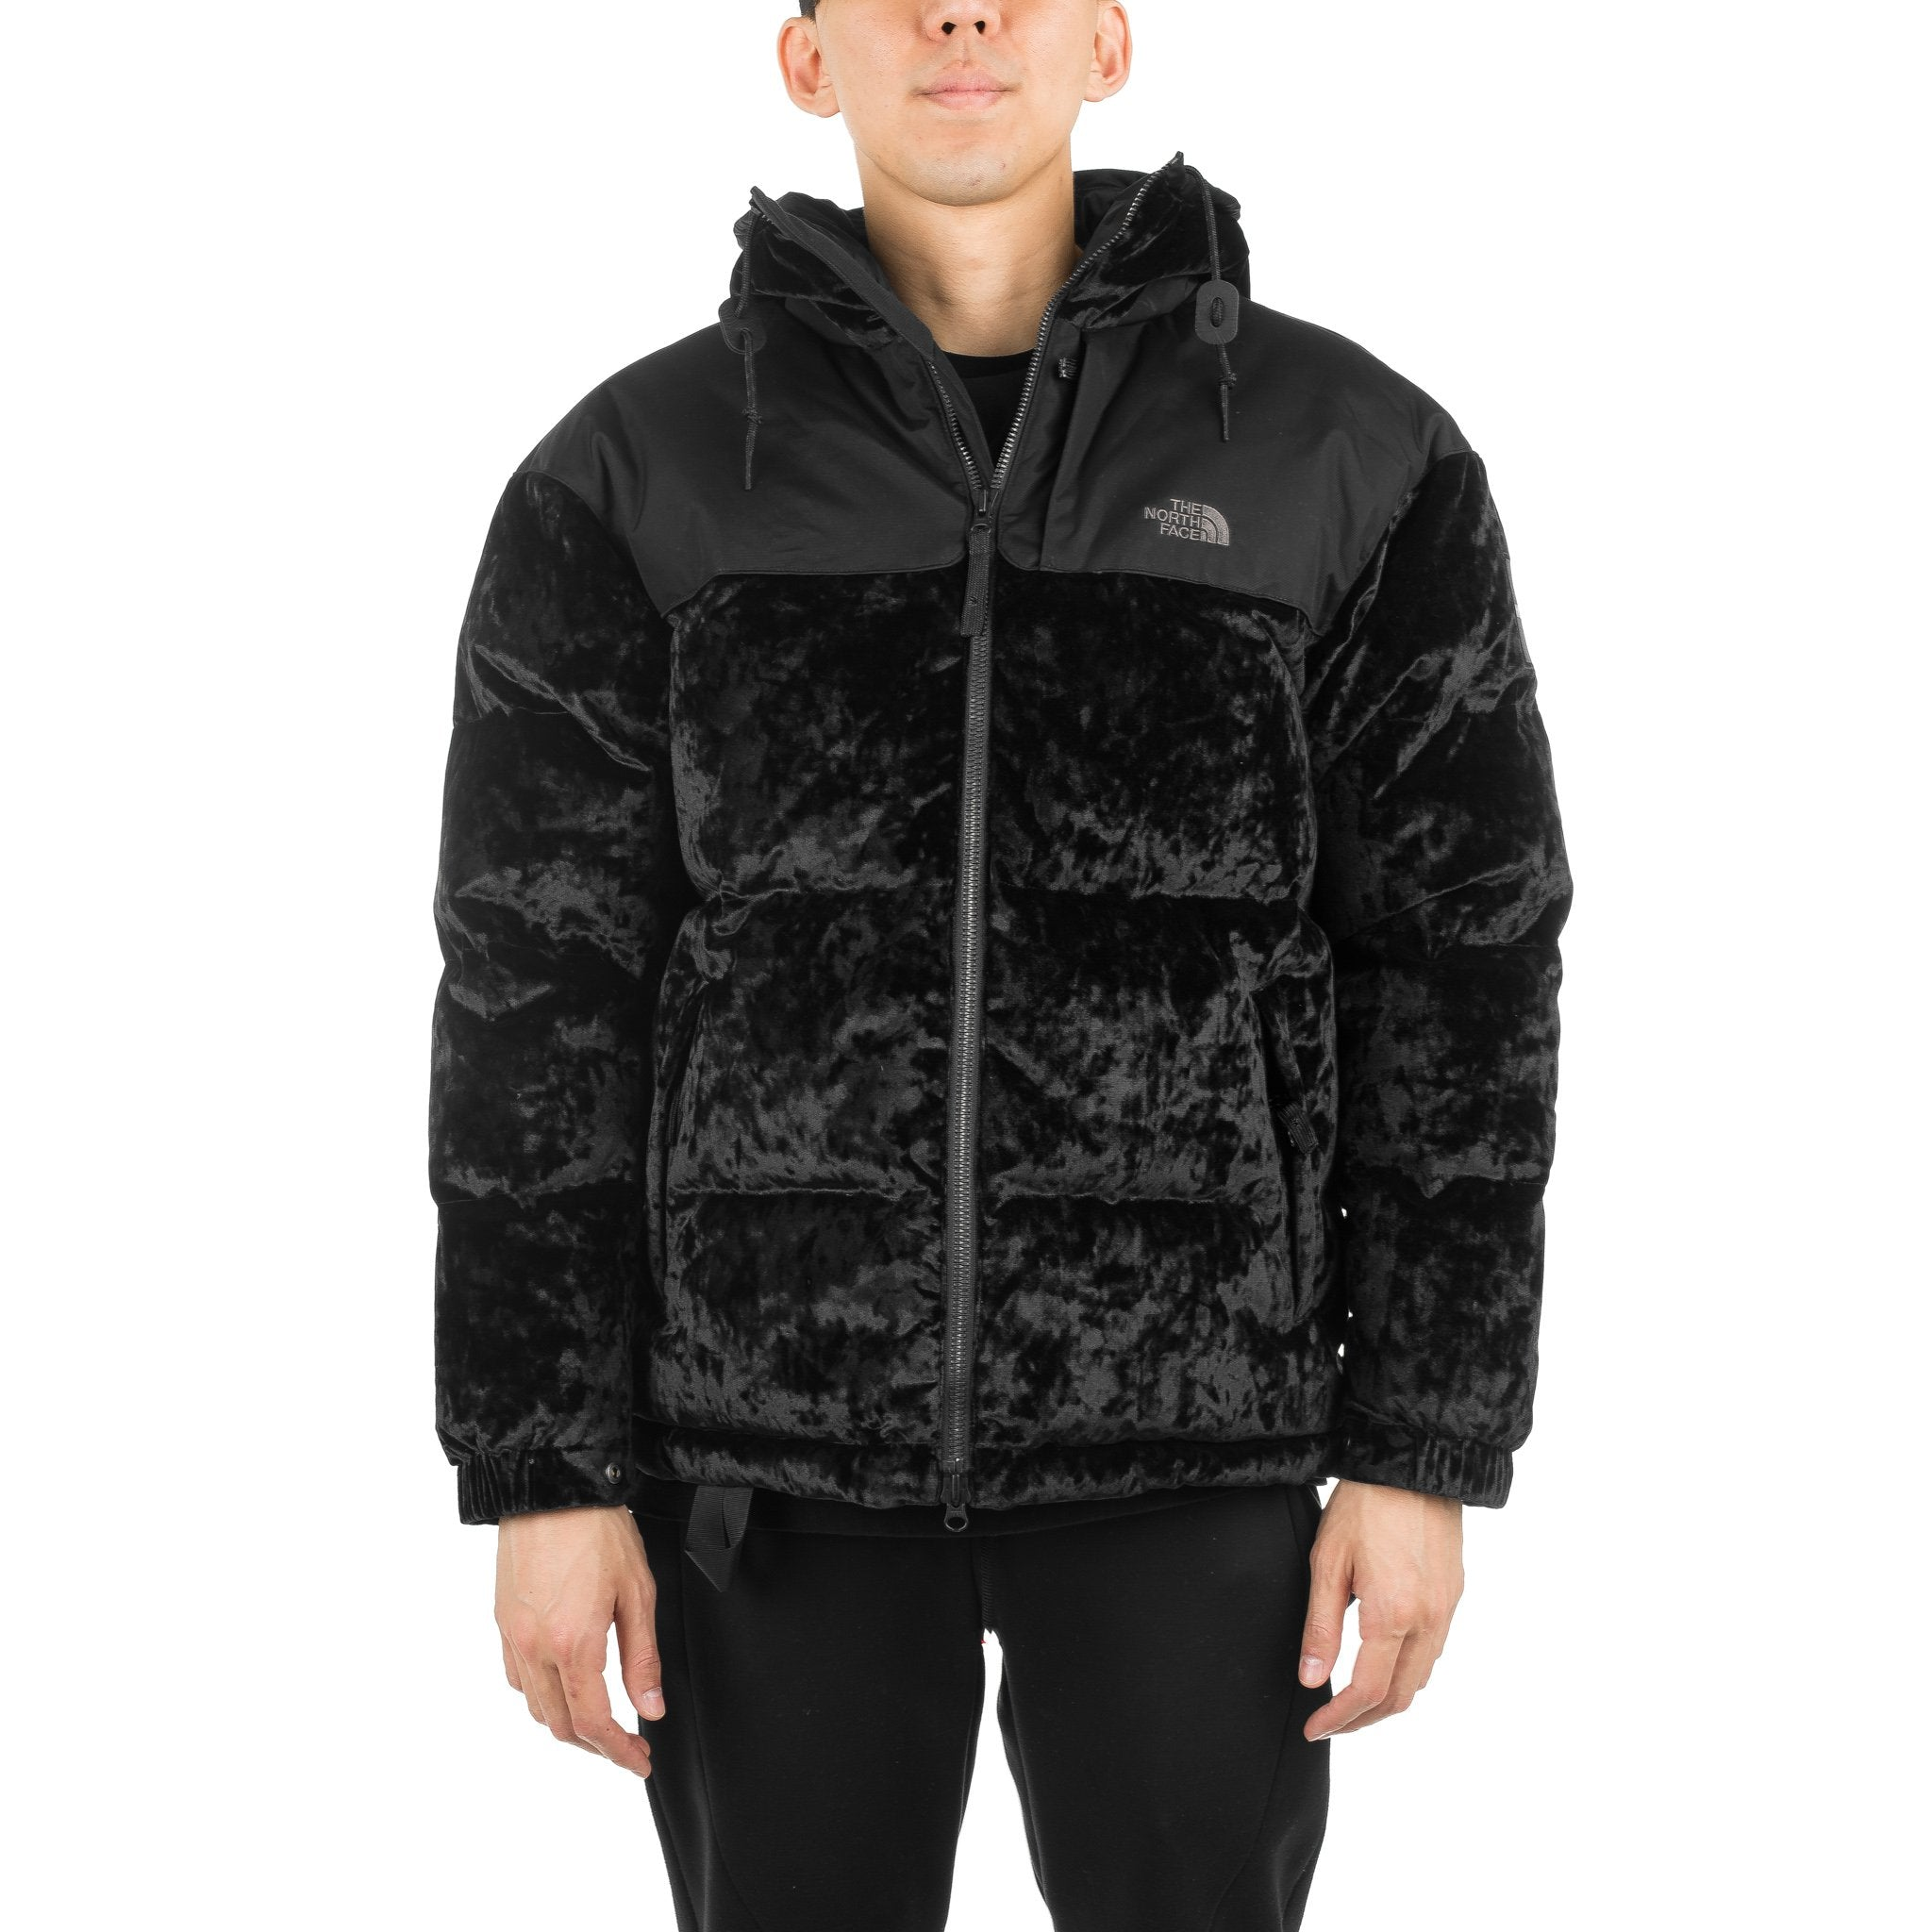 URBAN Velvet NPTS Jacket Black